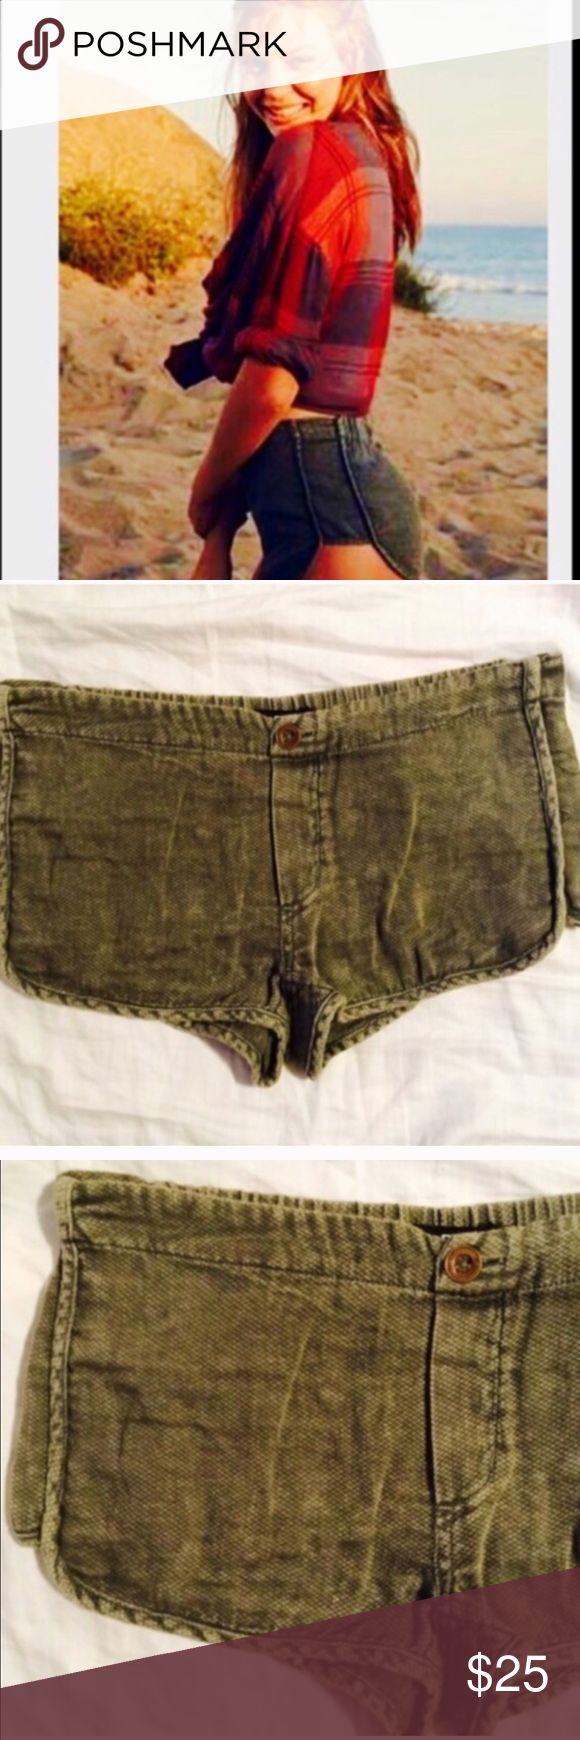 ❗️1 LEFT Urban Outfitters Olive Dolphin Shorts NWT ❗️1 LEFT Urban outfitters olive BDG dolphin shorts. NWT size small. Discounts on bundles! Holiday Sale! I also consider all reasonable offers so feel free to make an offer! Urban Outfitters Shorts